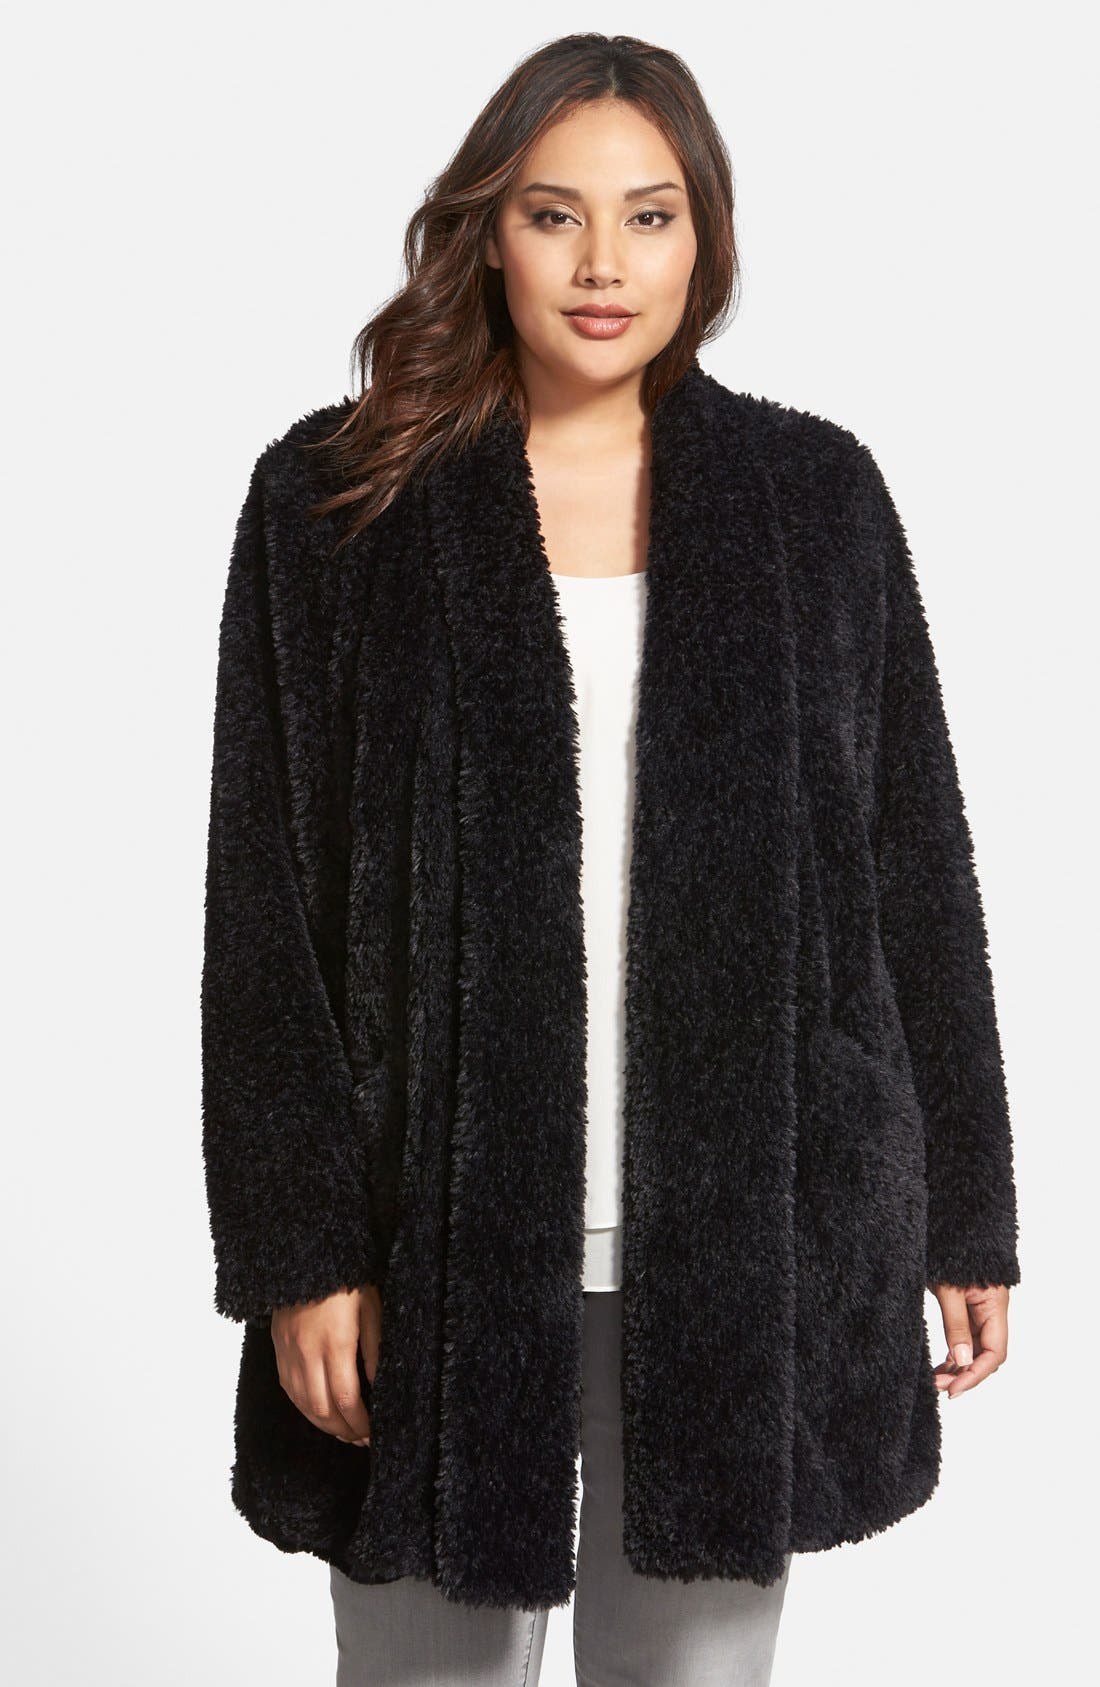 Alternate Image 1 Selected - Kenneth Cole New York 'Teddy Bear' Faux Fur Clutch Coat (Plus Size)